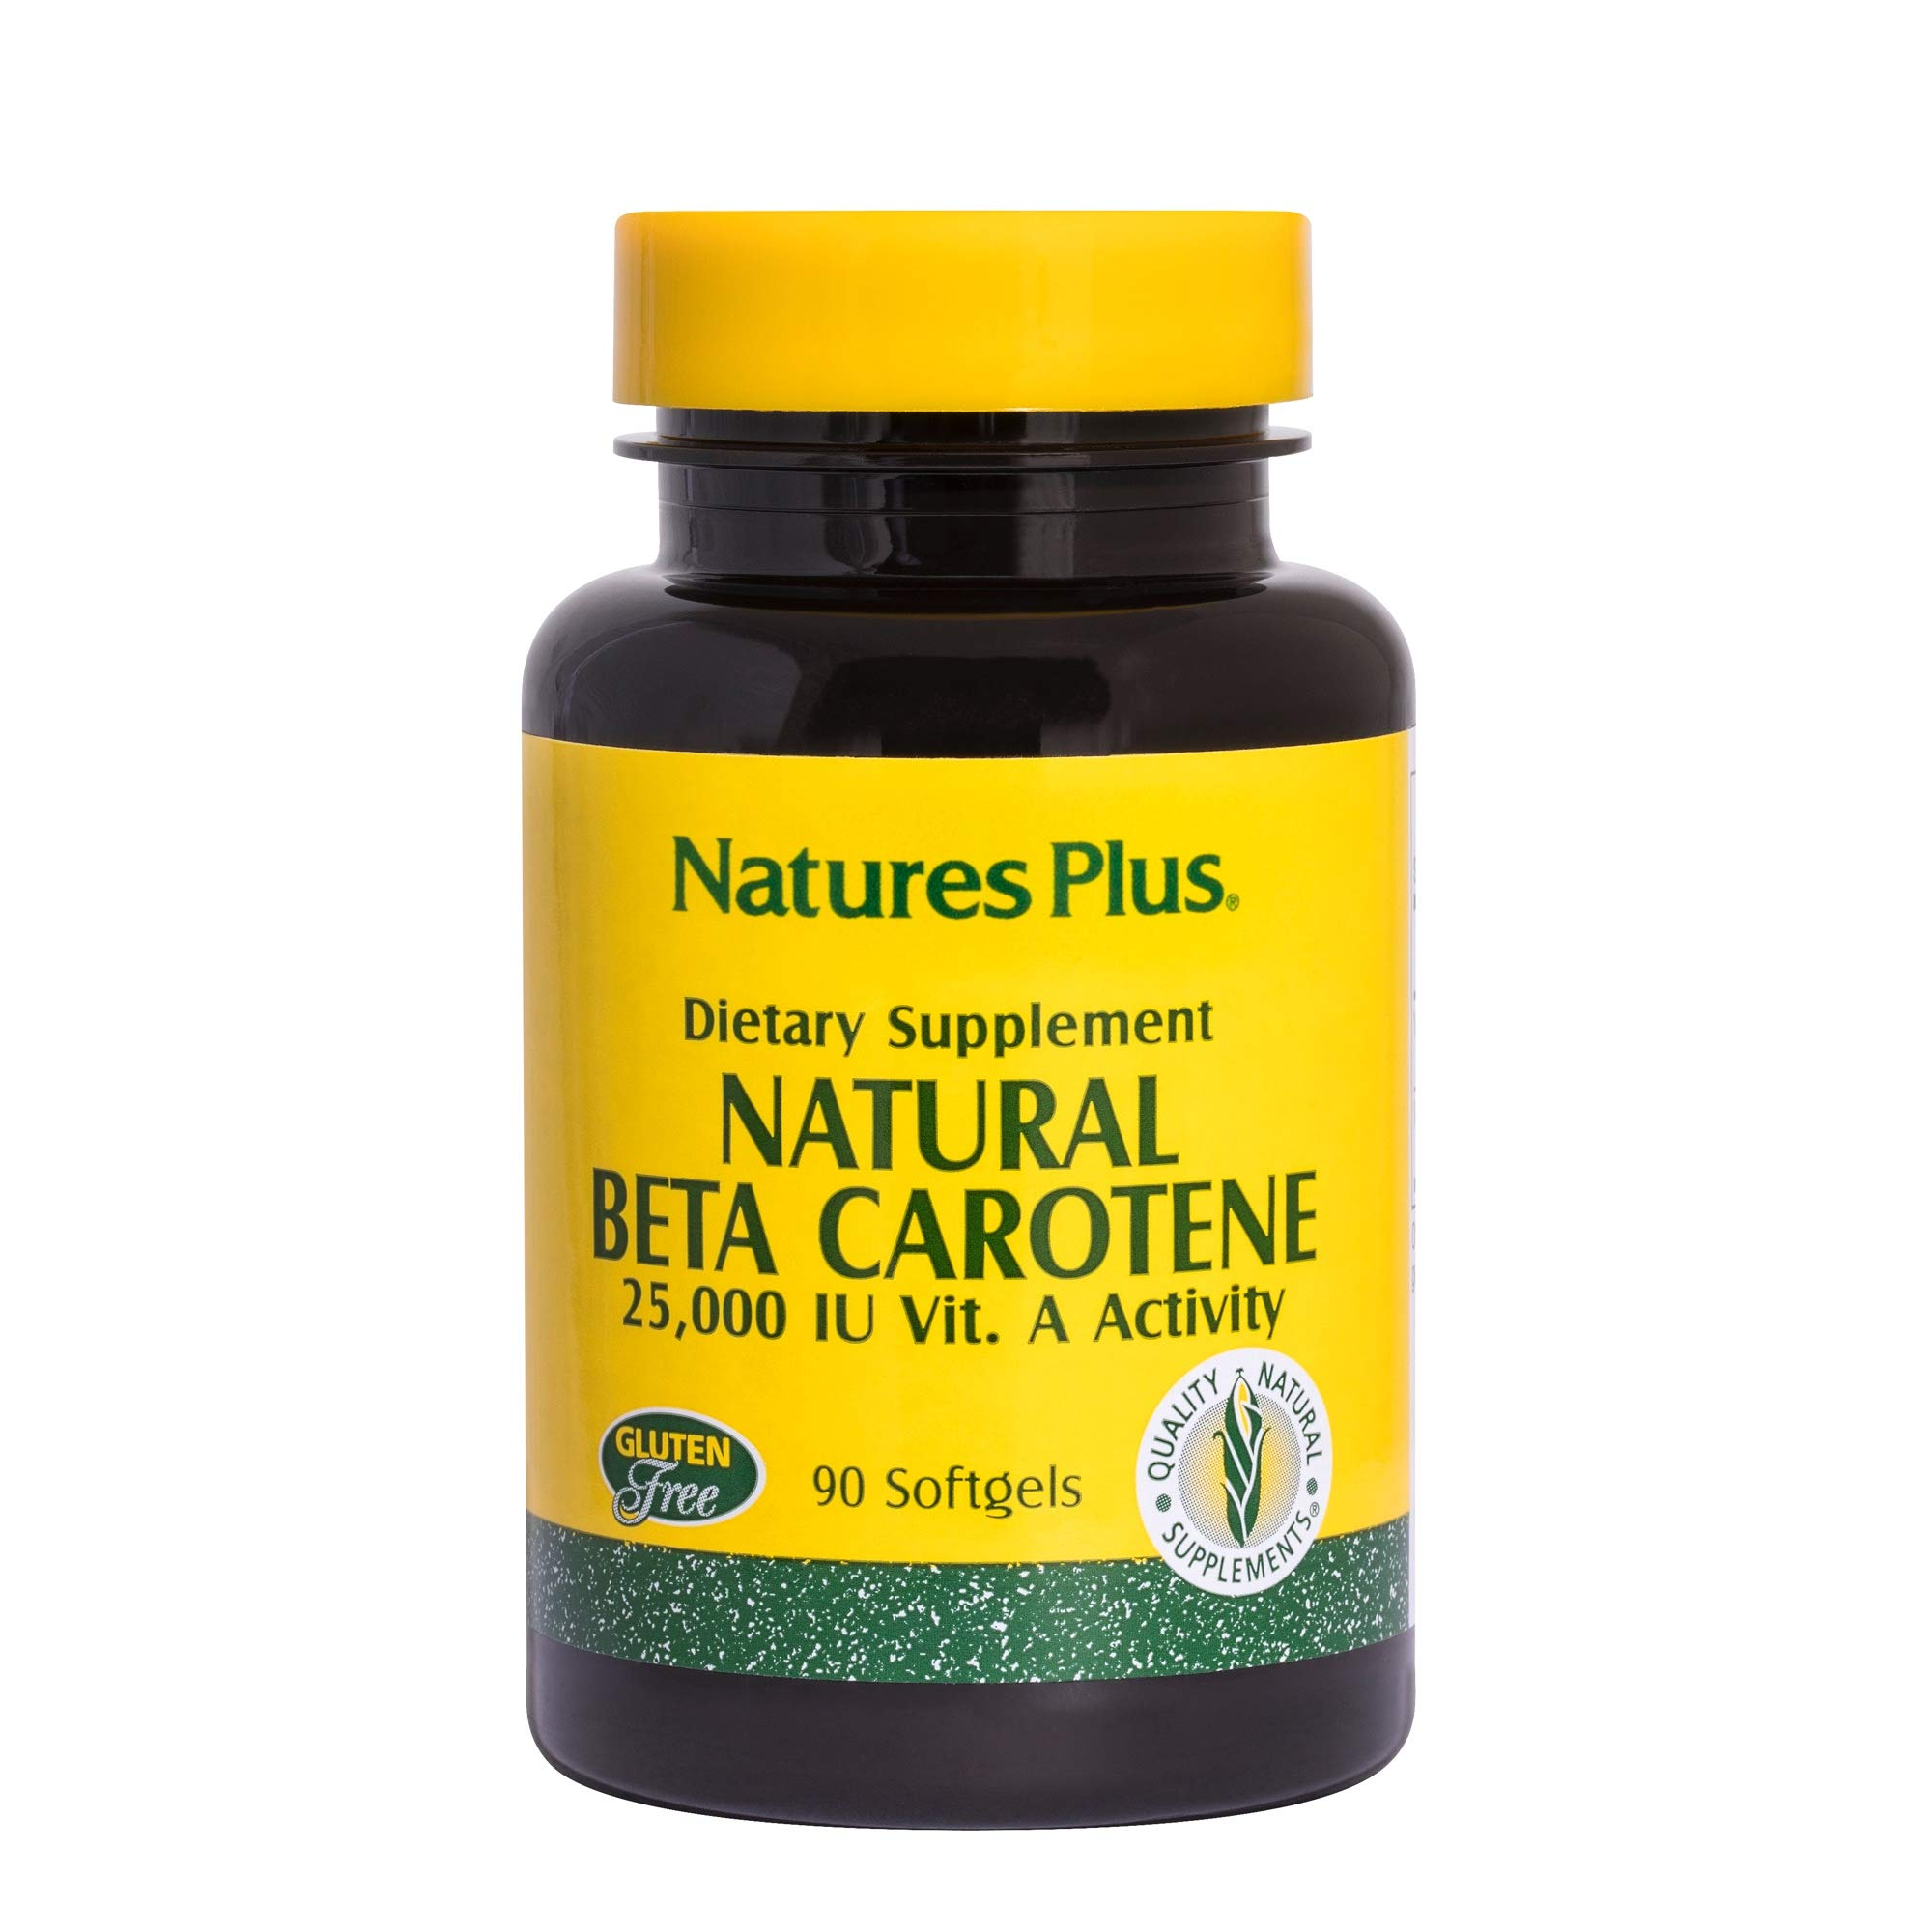 NaturesPlus Natural Beta Carotene - 25,000 iu Vitamin A & Vitamin E, 90 Softgels - Eye Supplement, Antioxidant, Aids in Free Radical & Natural Cellular Defense - Gluten-Free - 90 Servings by Nature's Plus